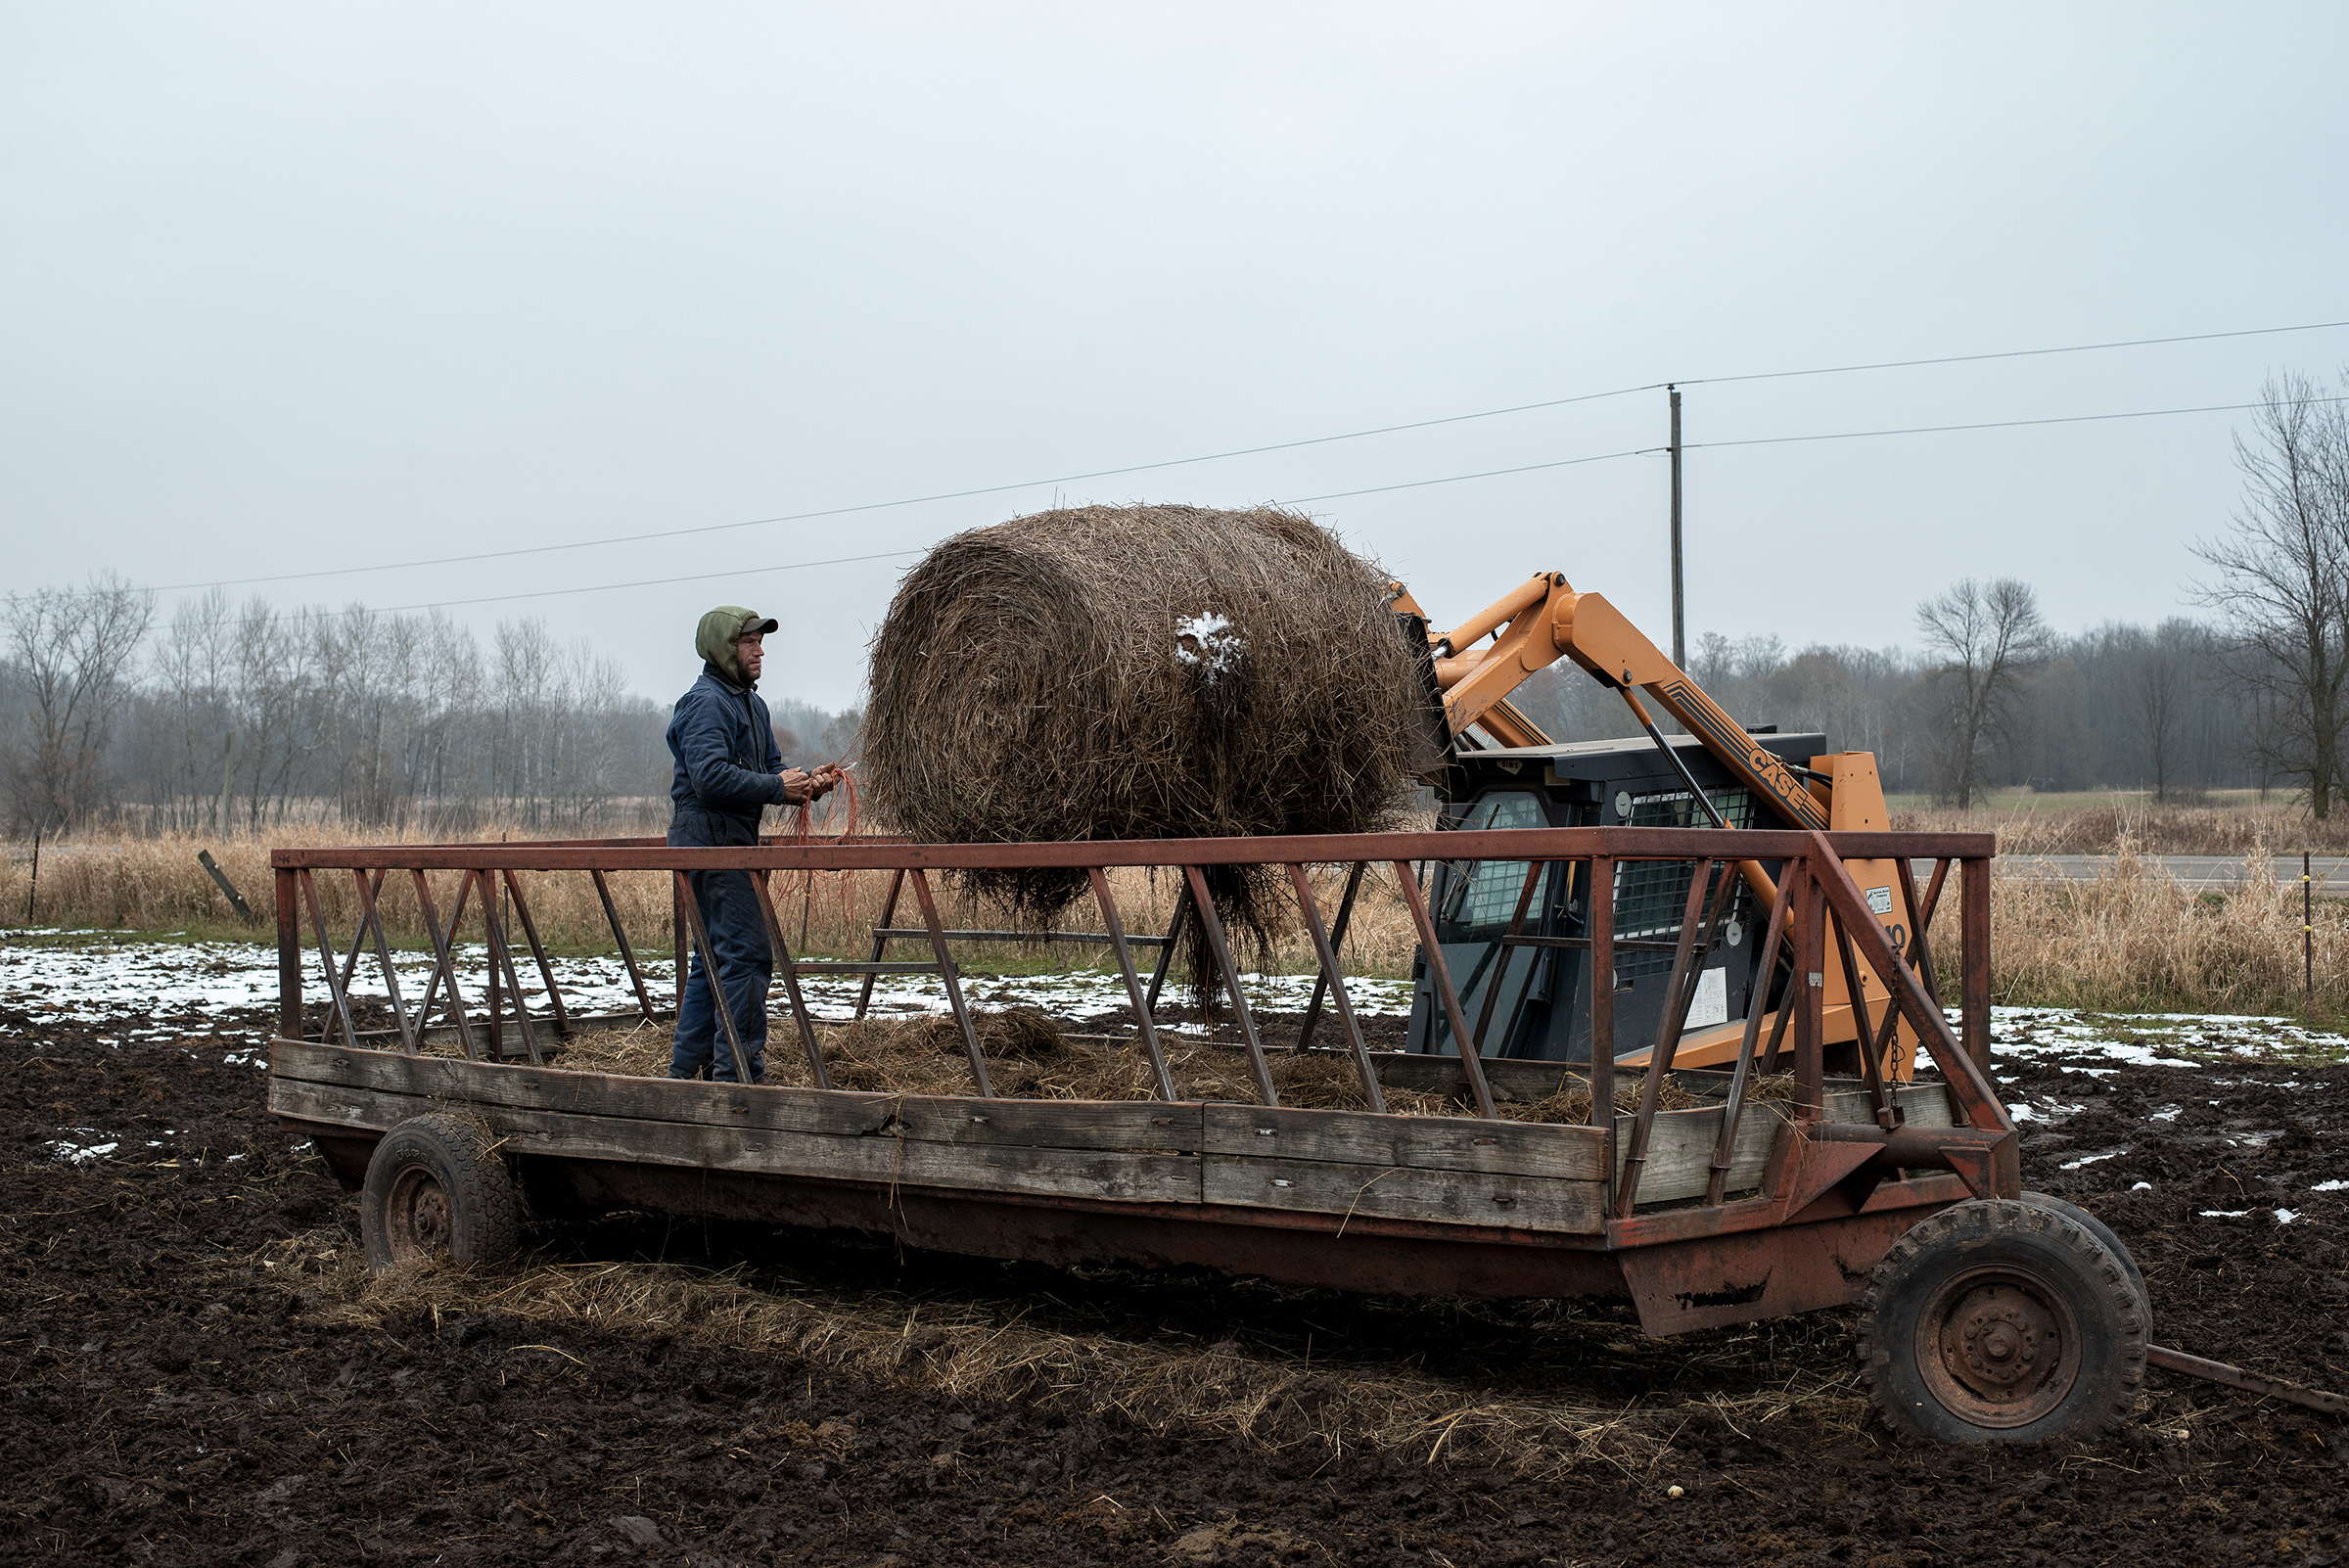 Steven Rieckmann loading a bale of hay on Nov. 20, 2019.